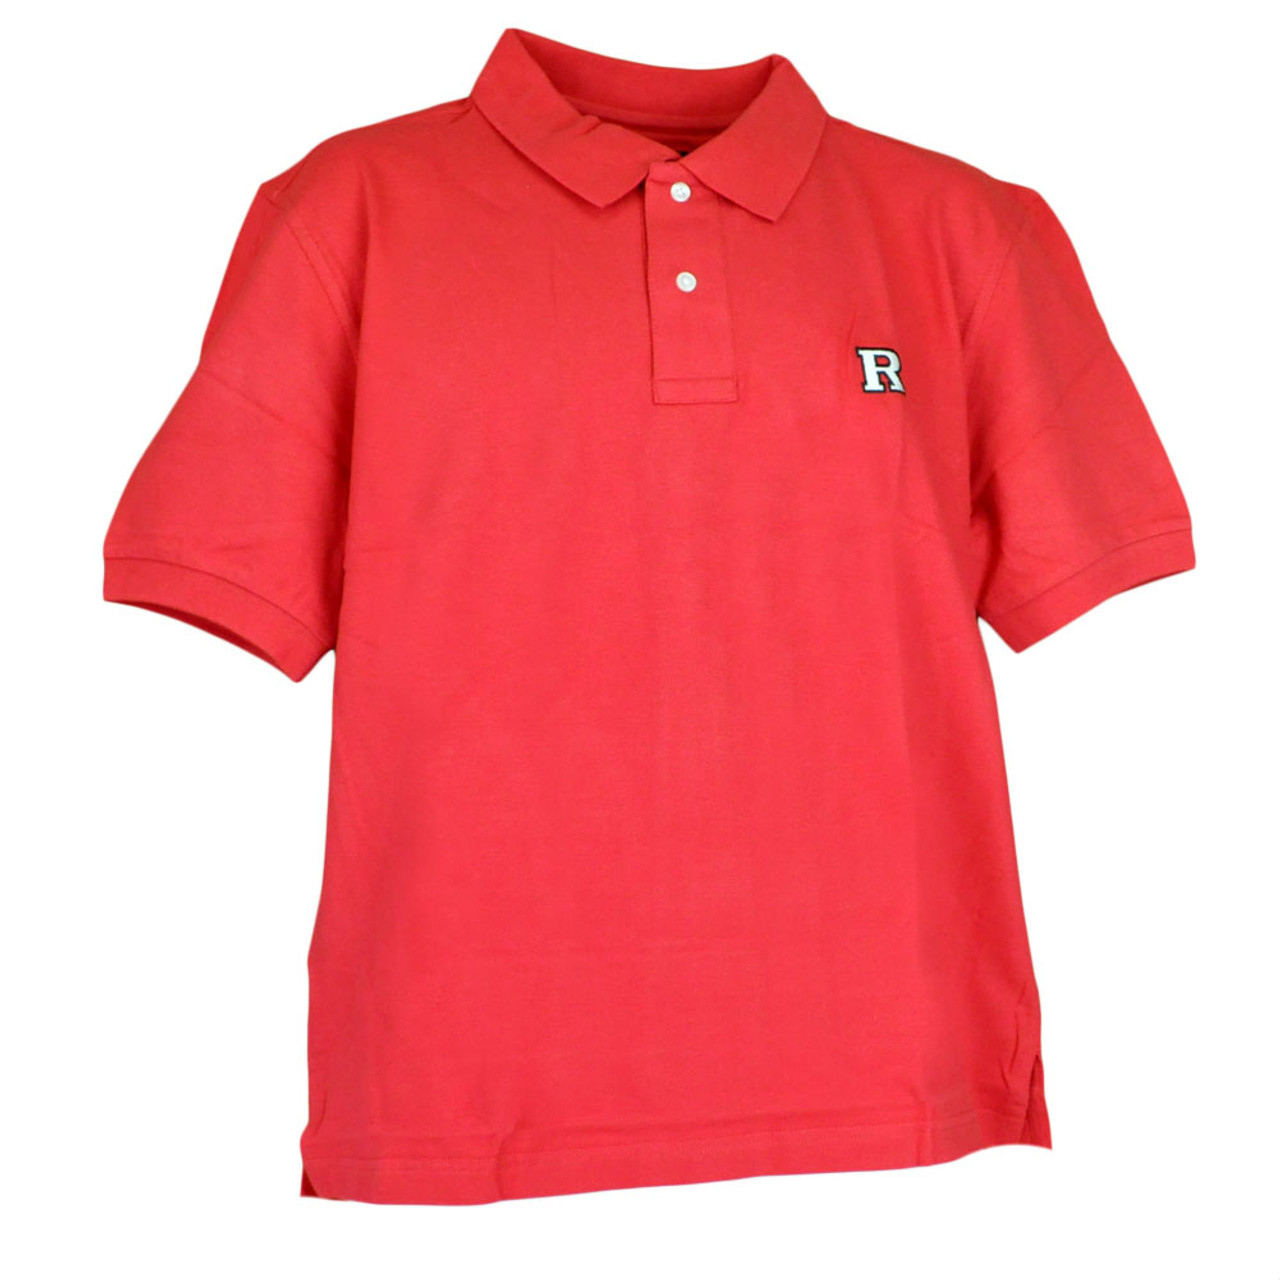 low cost 3f4a7 bfe48 NCAA Rutgers Scarlet Knights Logo Pique Polo Red Collar Dress Button Shirt  - Cap Store Online.com